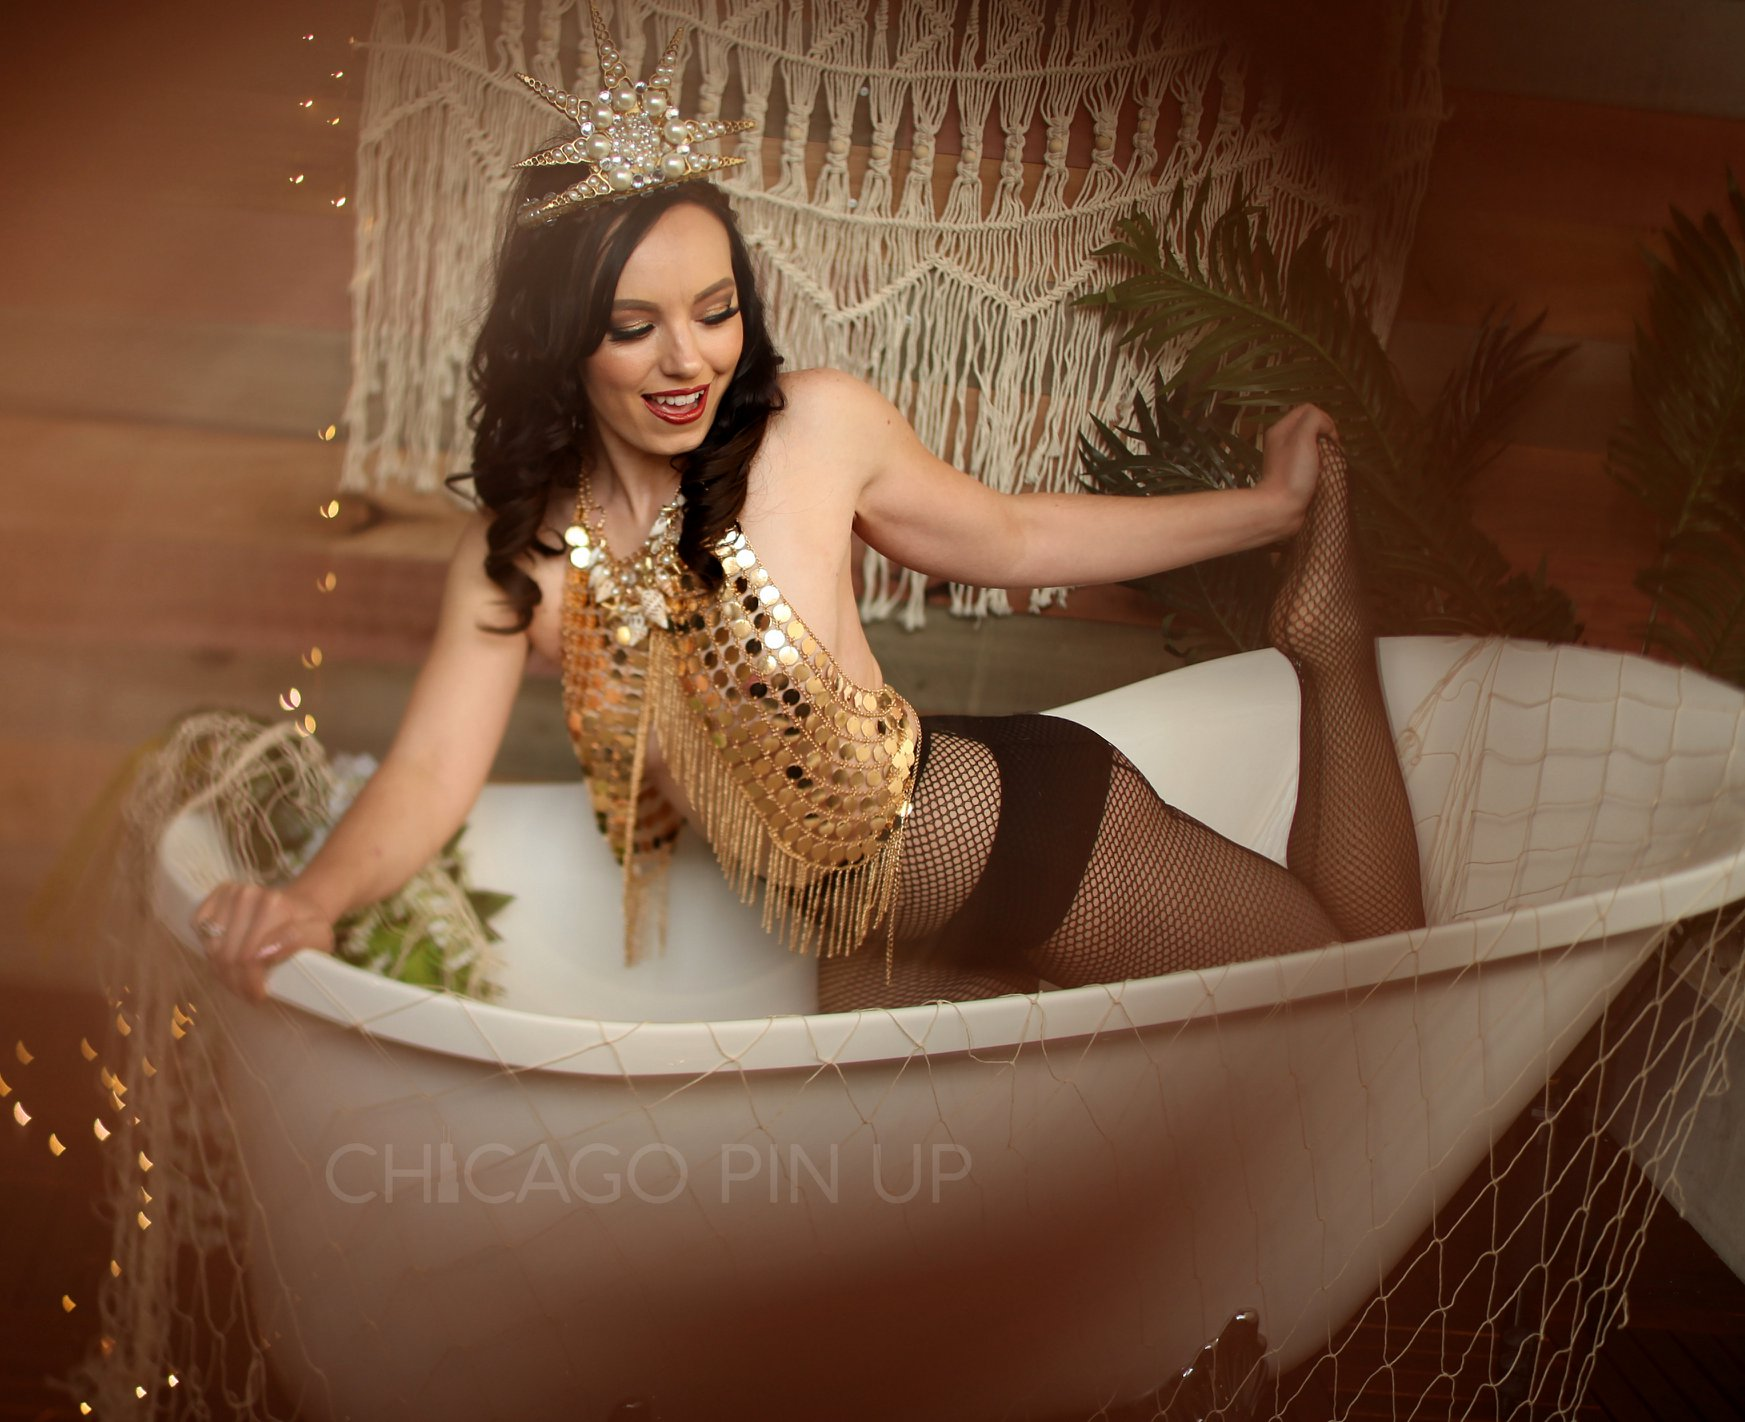 Stunning-Pinup-Session-with-Chicago-Pinup-Boudoir-Studios.jpg